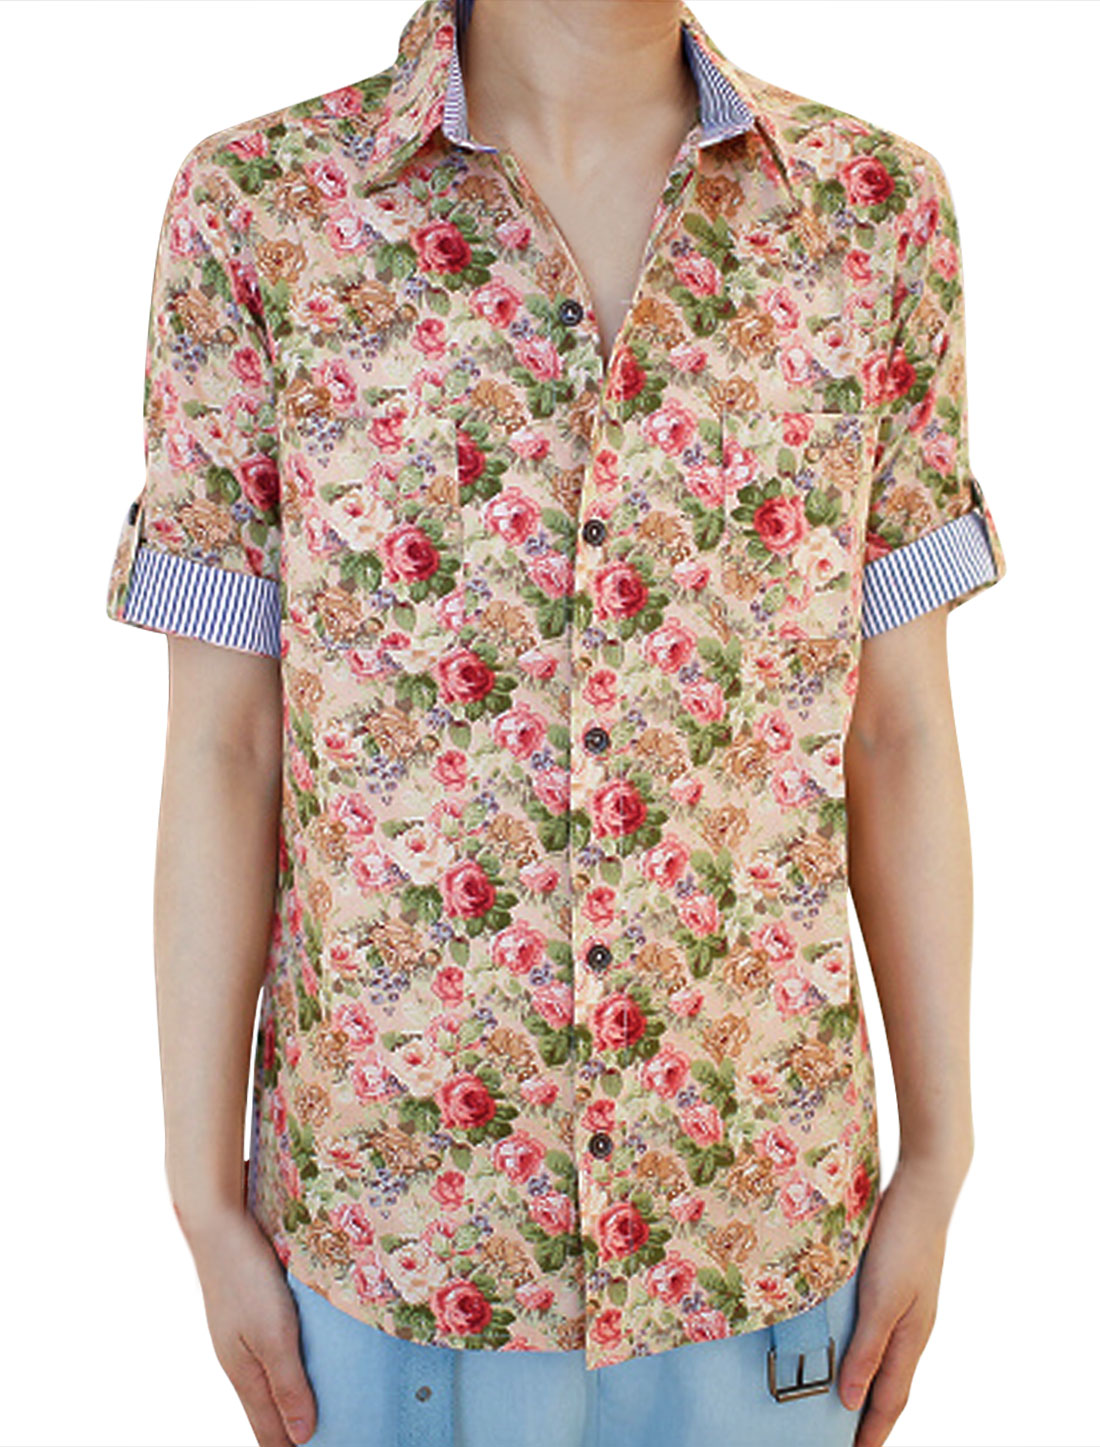 Men Pink Floral Patten Point Collar Chest Pocket Button Up Shirt S